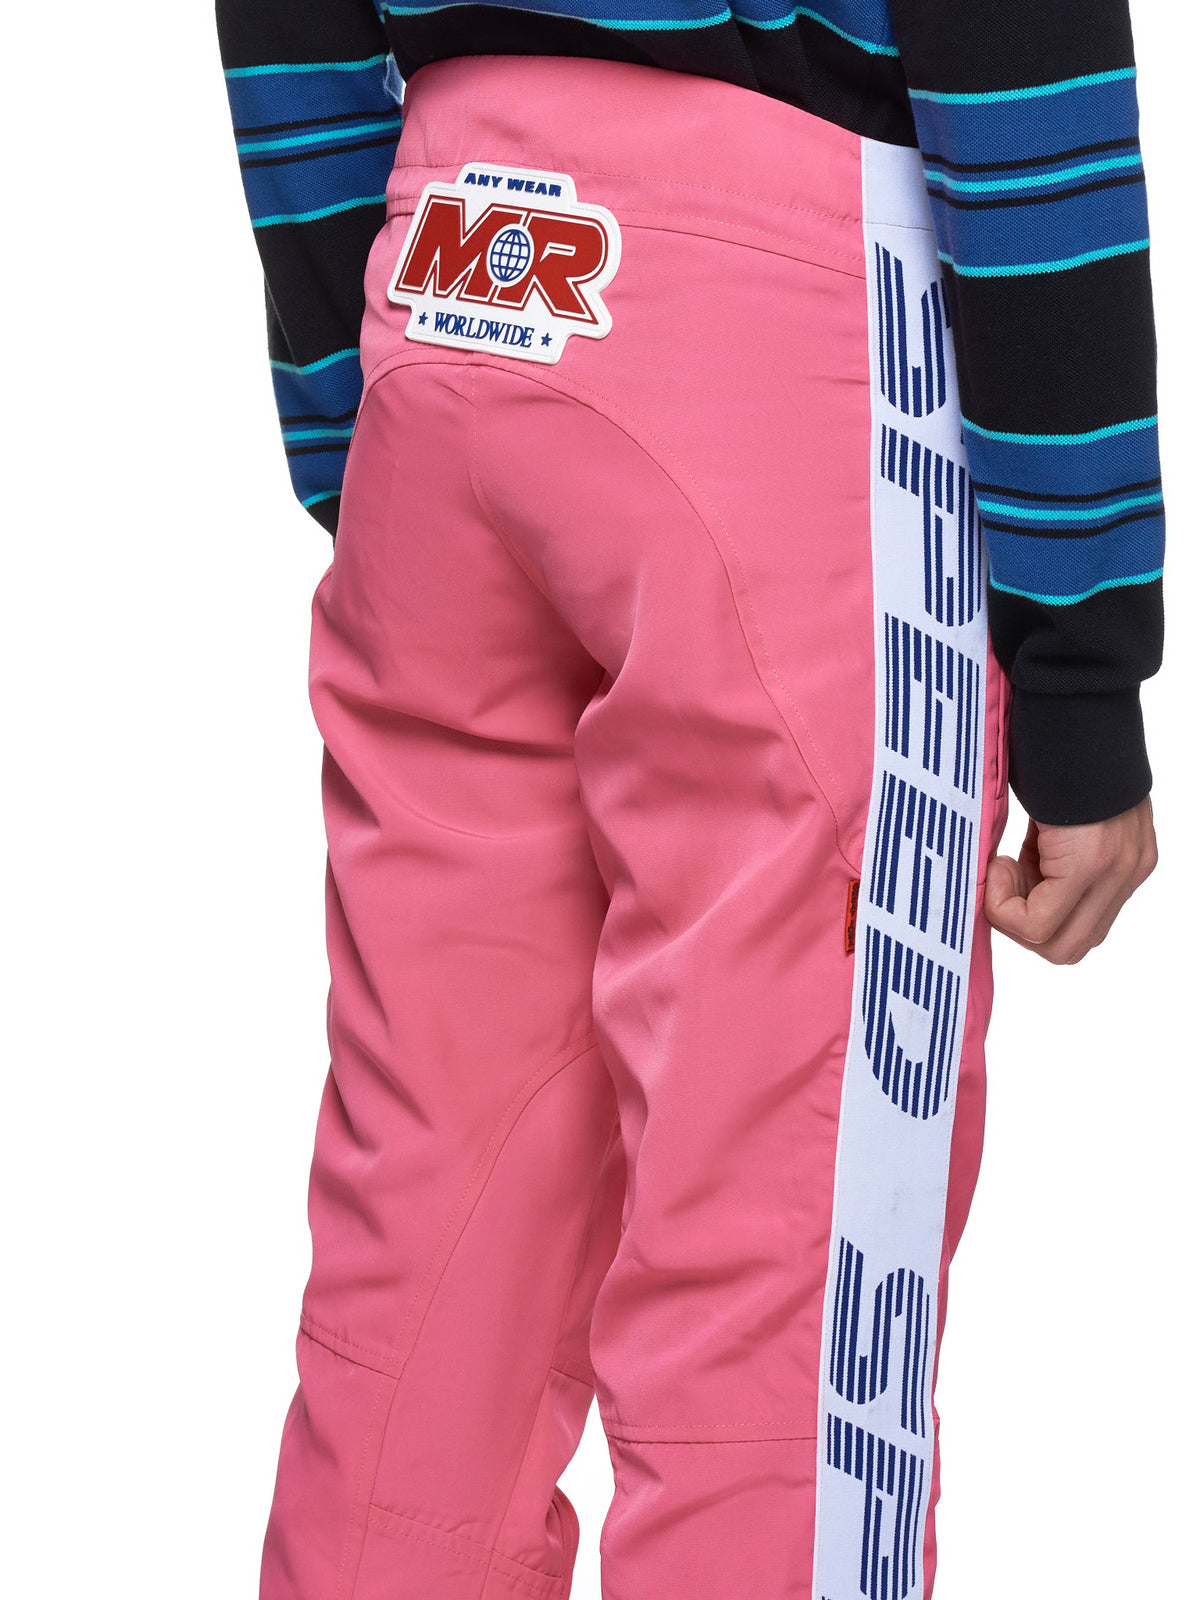 Motorcross Trousers (828-PINK)